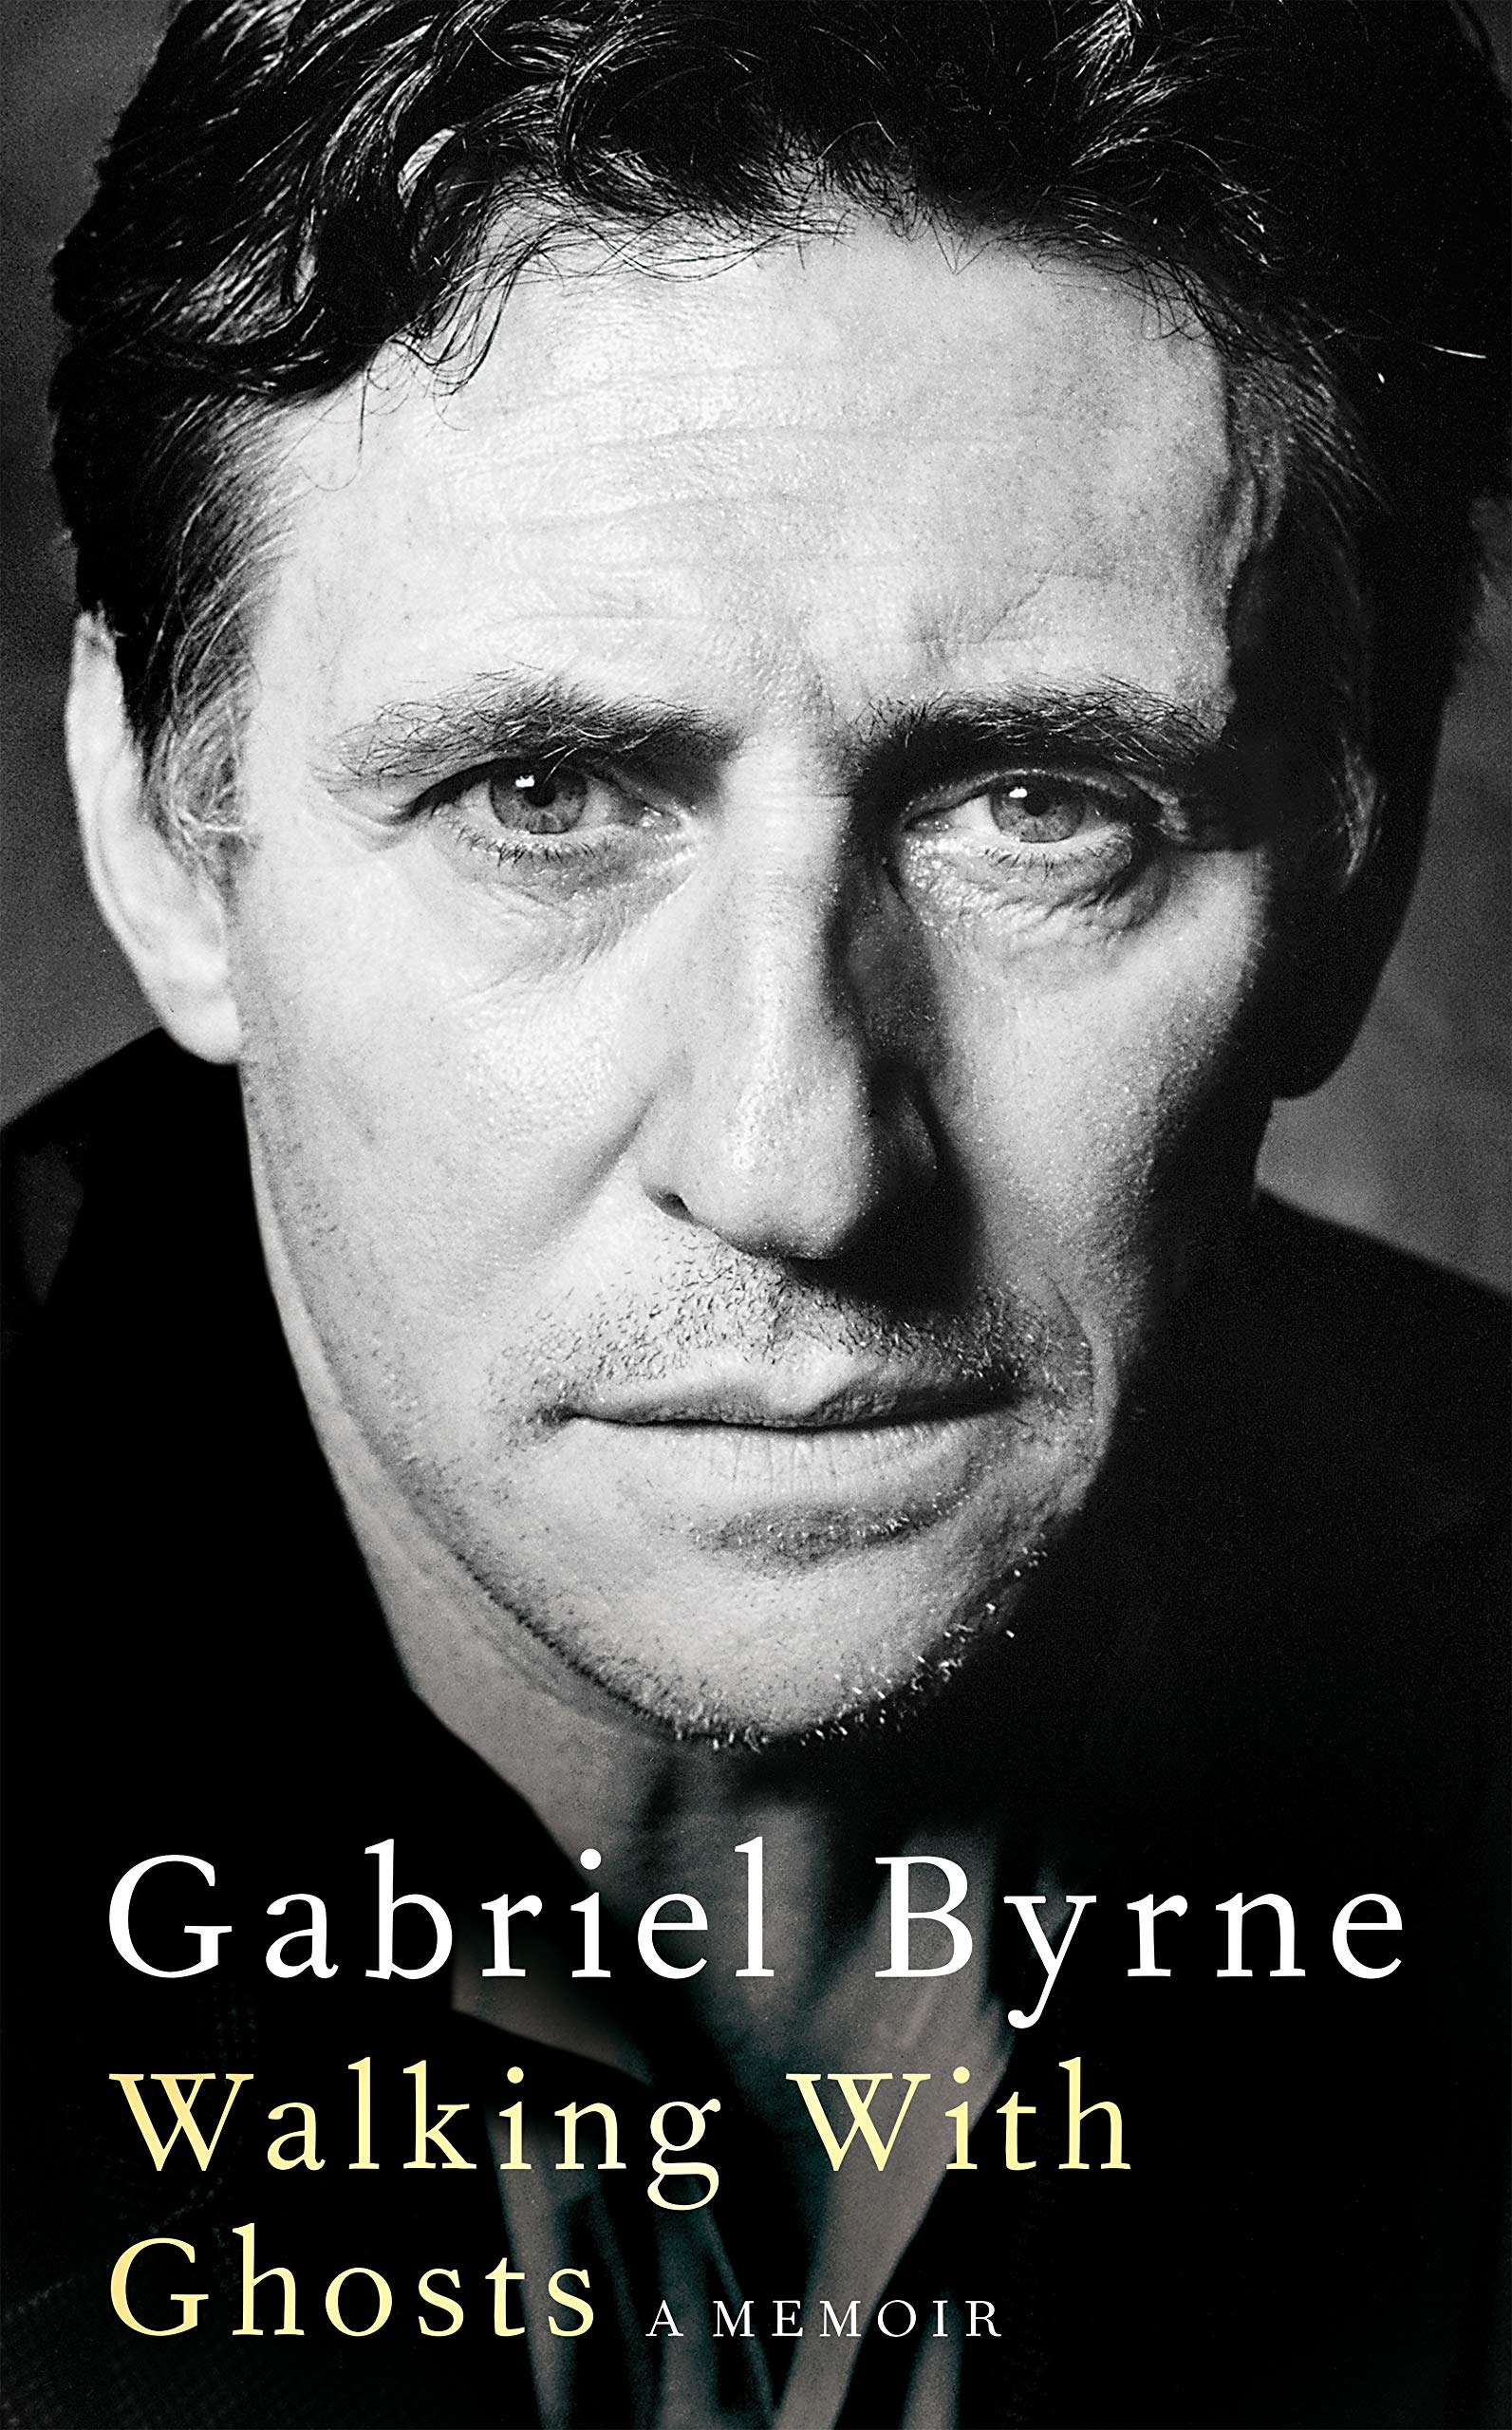 Walking With Ghosts | Gabriel Byrne | Charlie Byrne's